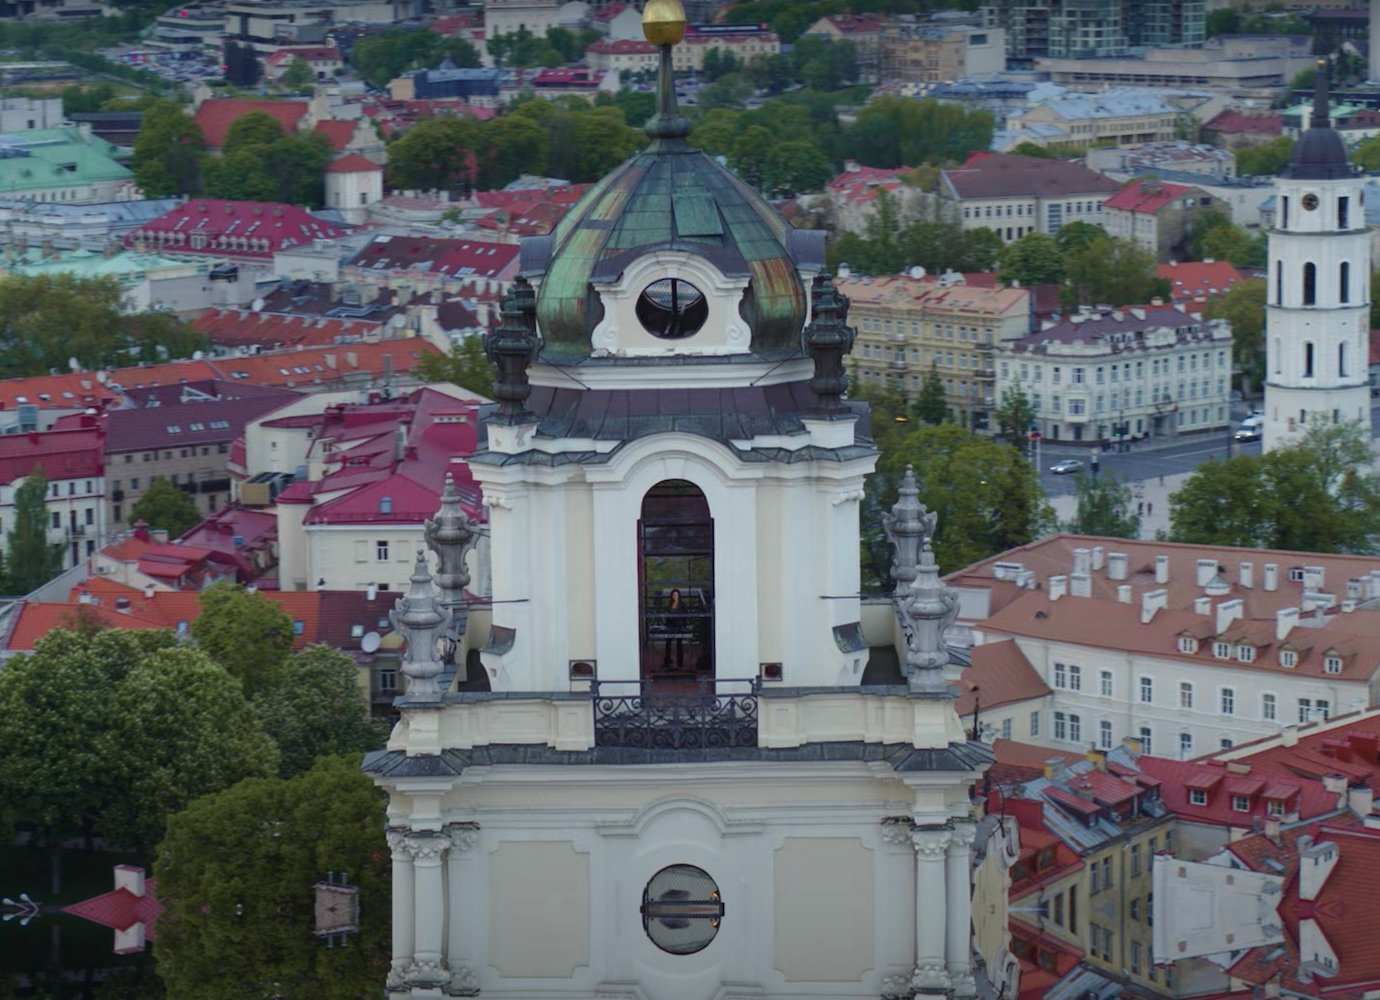 Listen to a 1-hour dark disco DJ set from a bell tower above Vilnius' Old Town